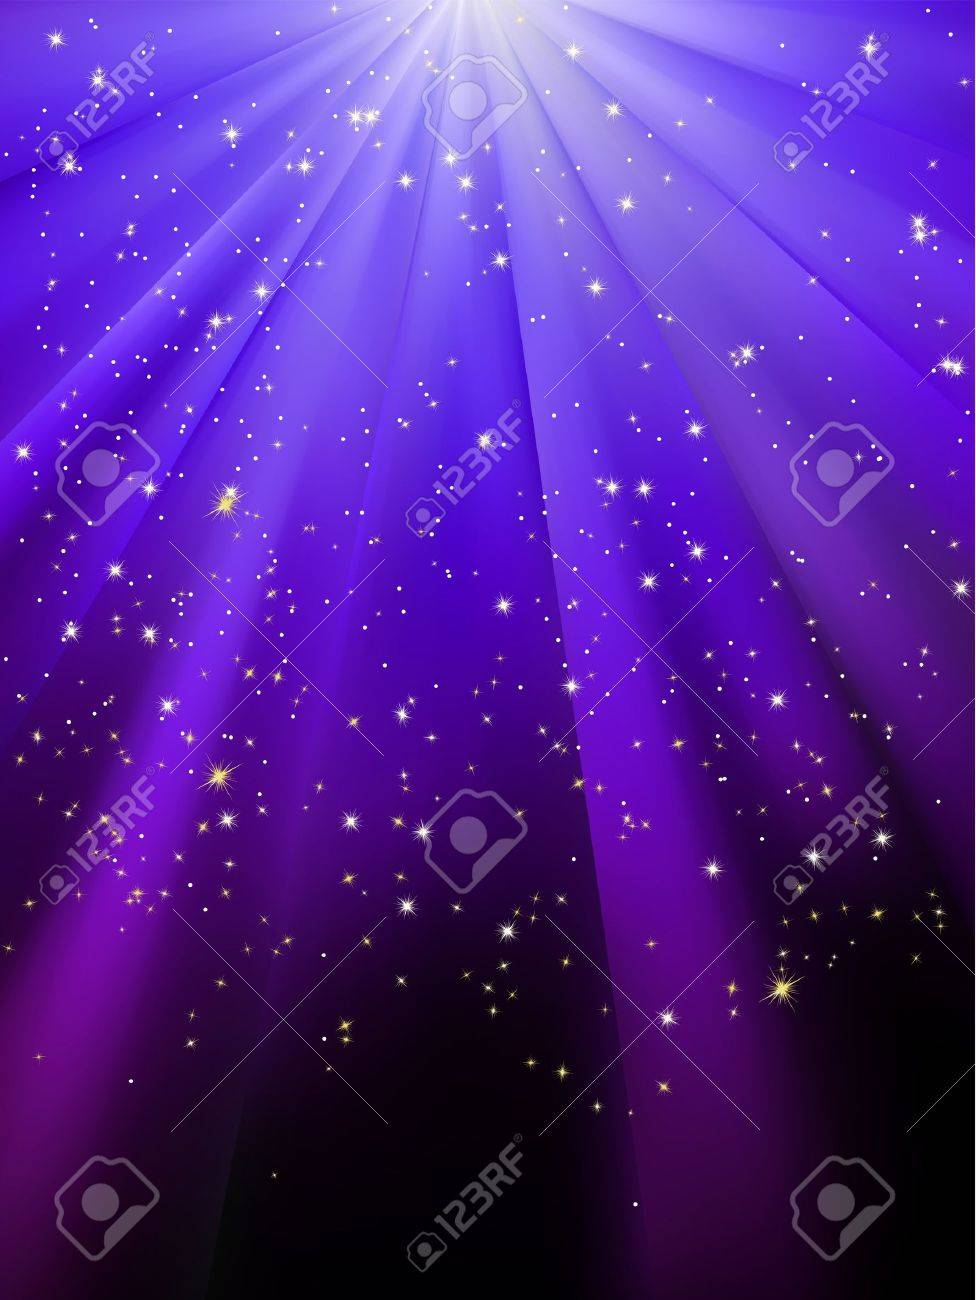 Stars on blue striped background. Festive pattern great for winter or christmas themes. Stock Vector - 15899266